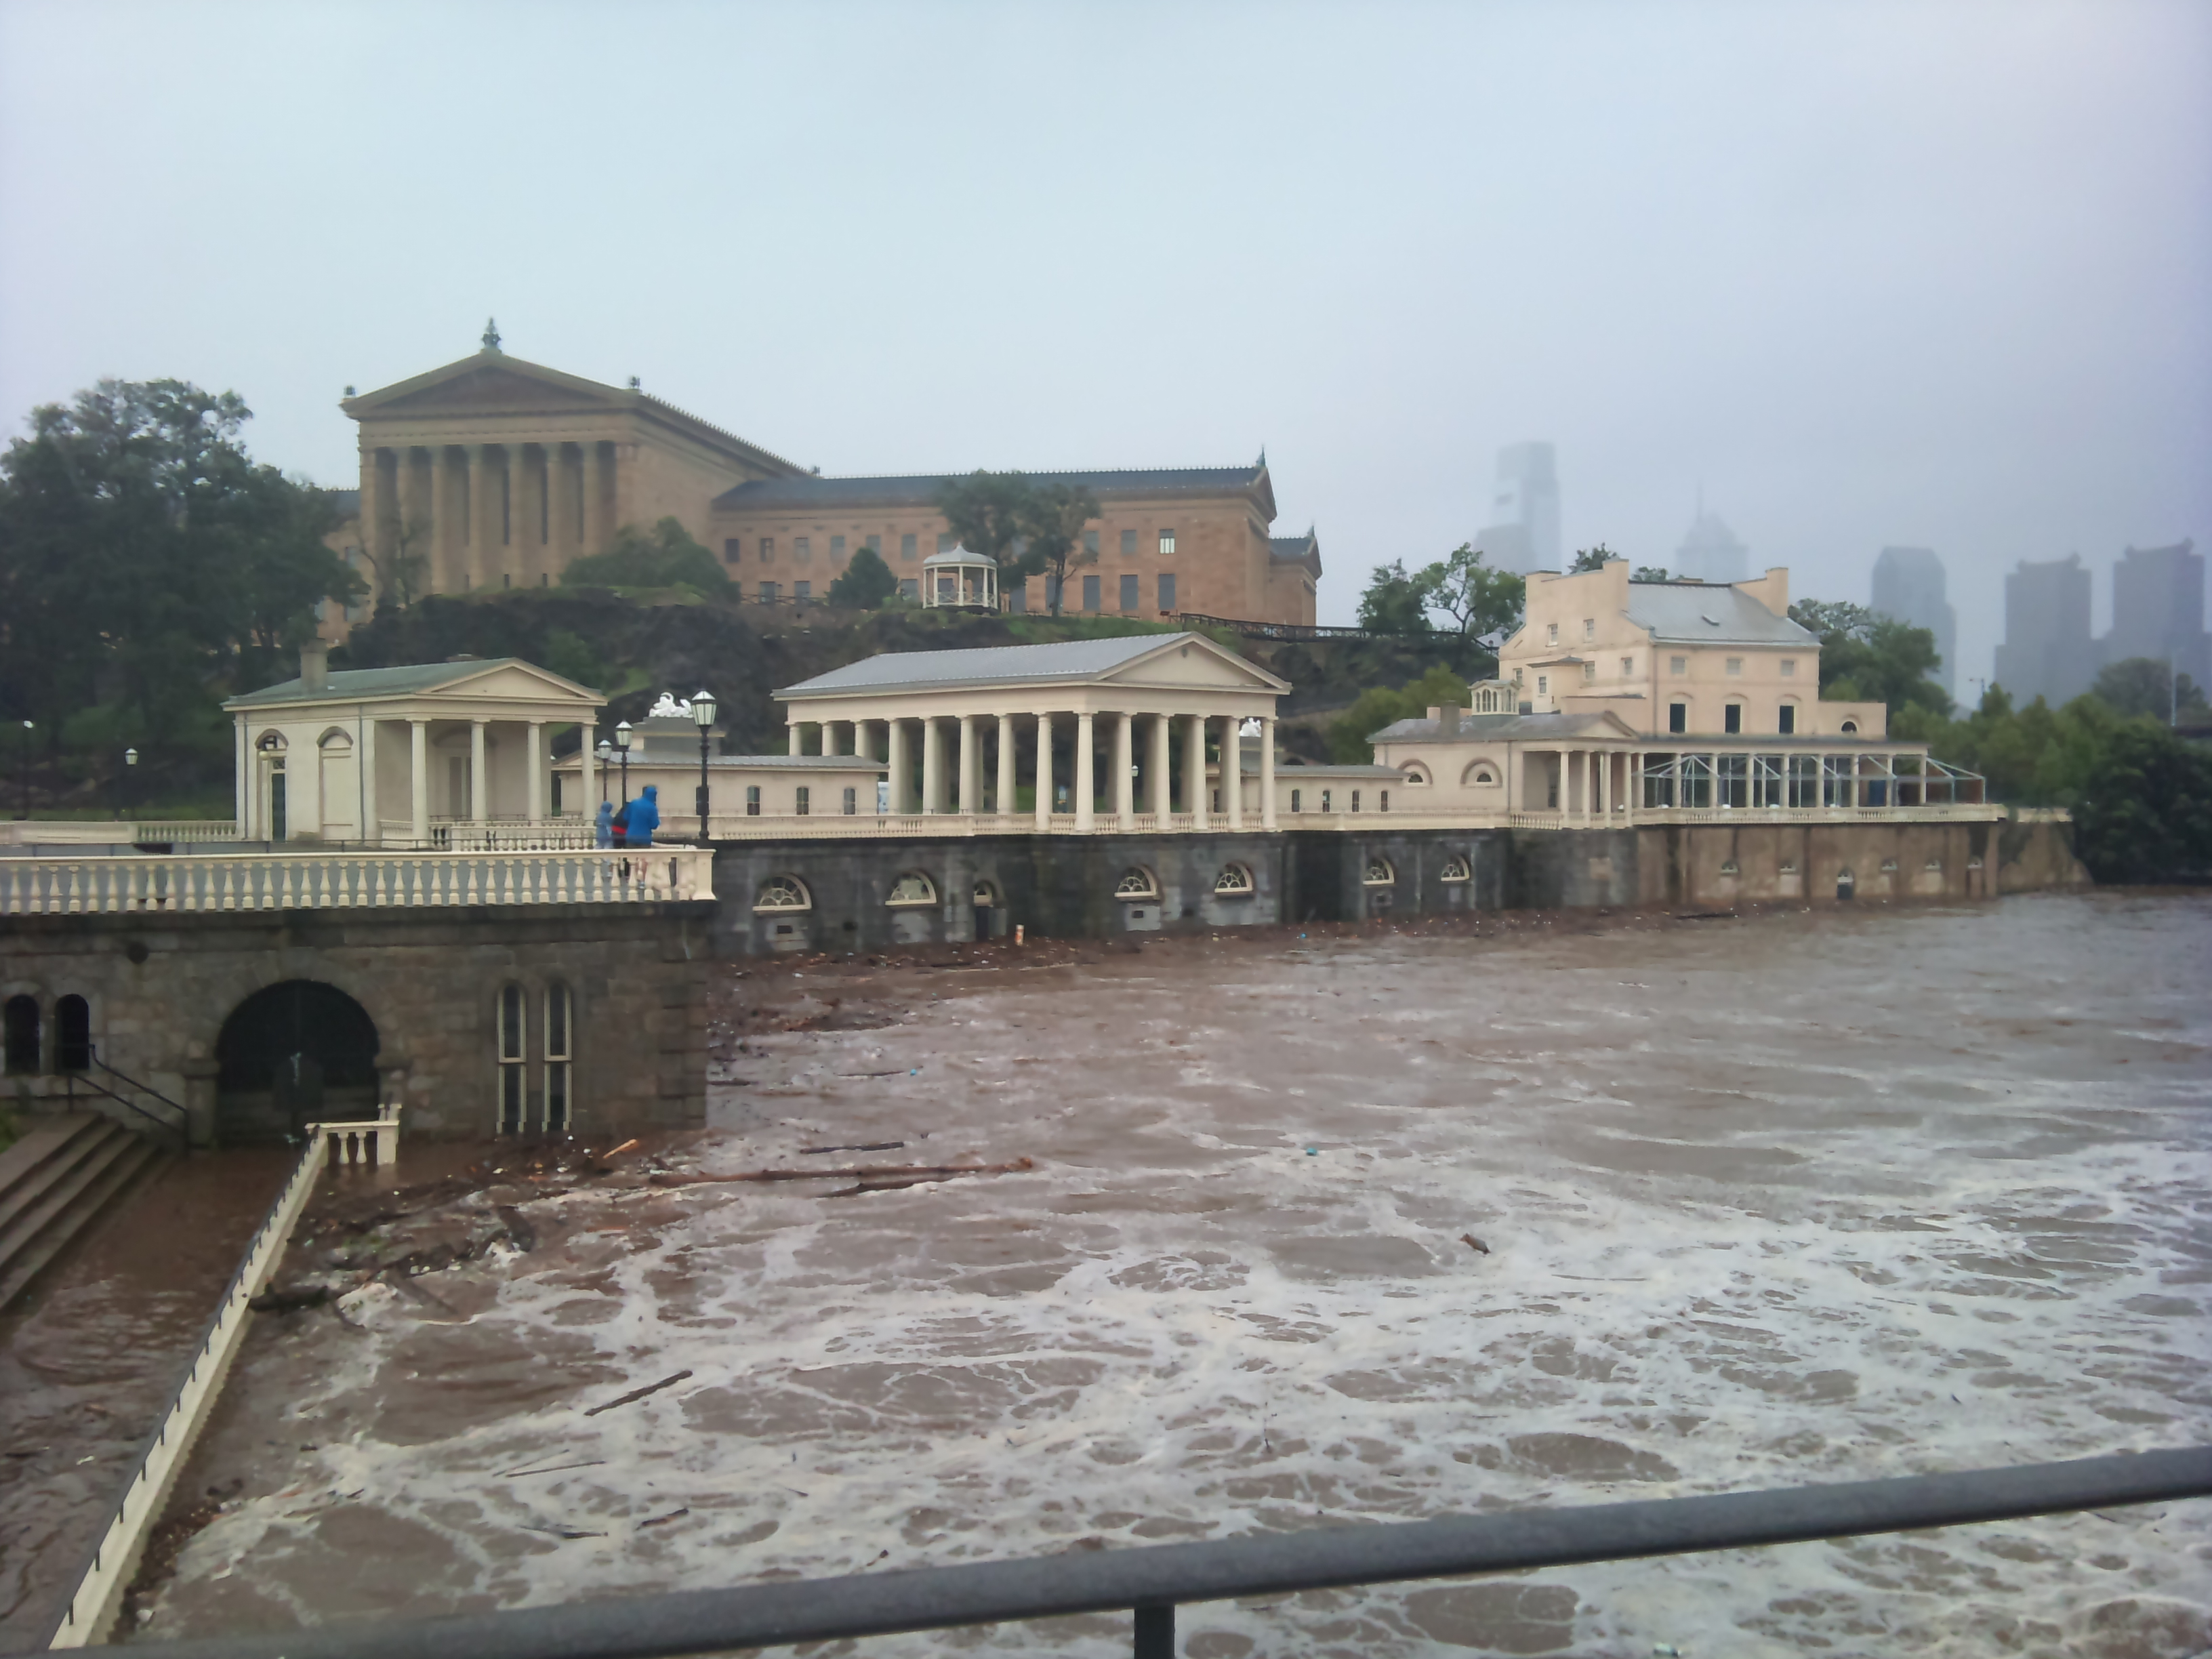 Rough Waters by the Philadelphia Waterworks